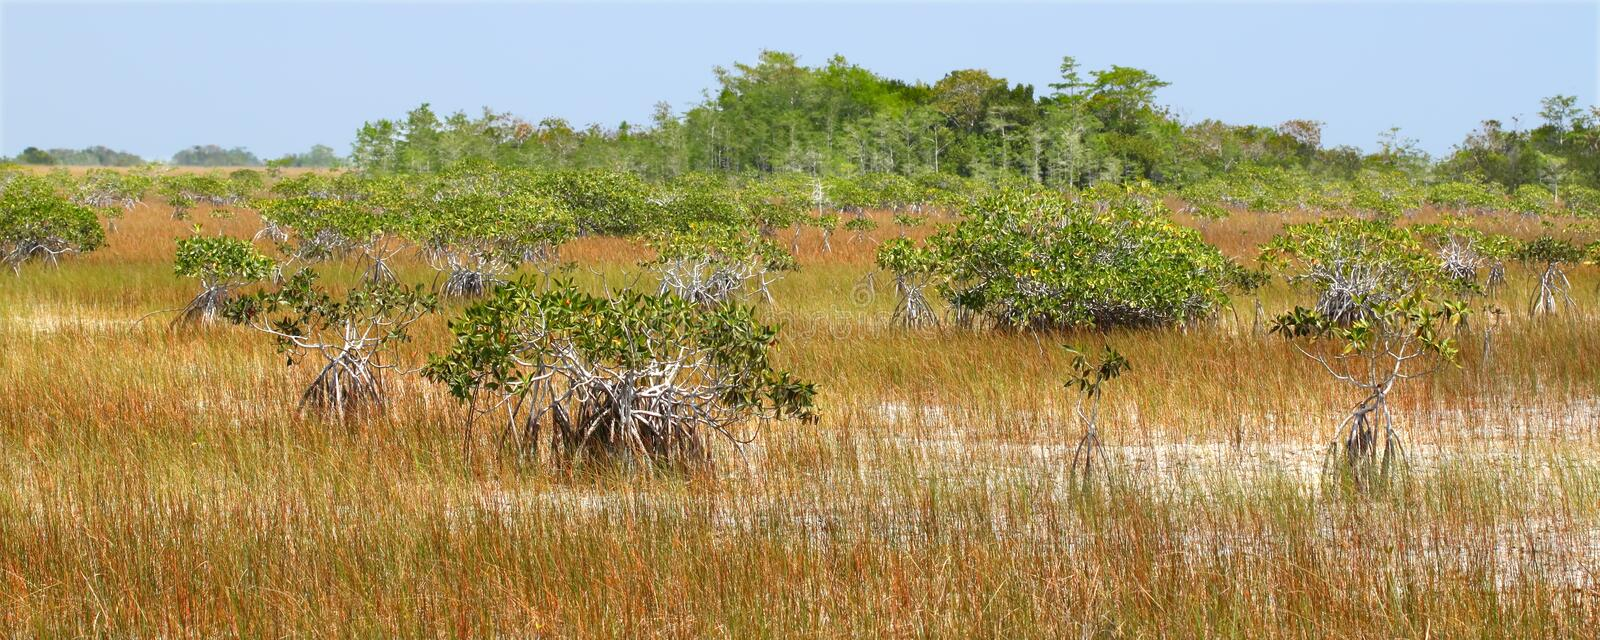 Mangroves in the Everglades stock images